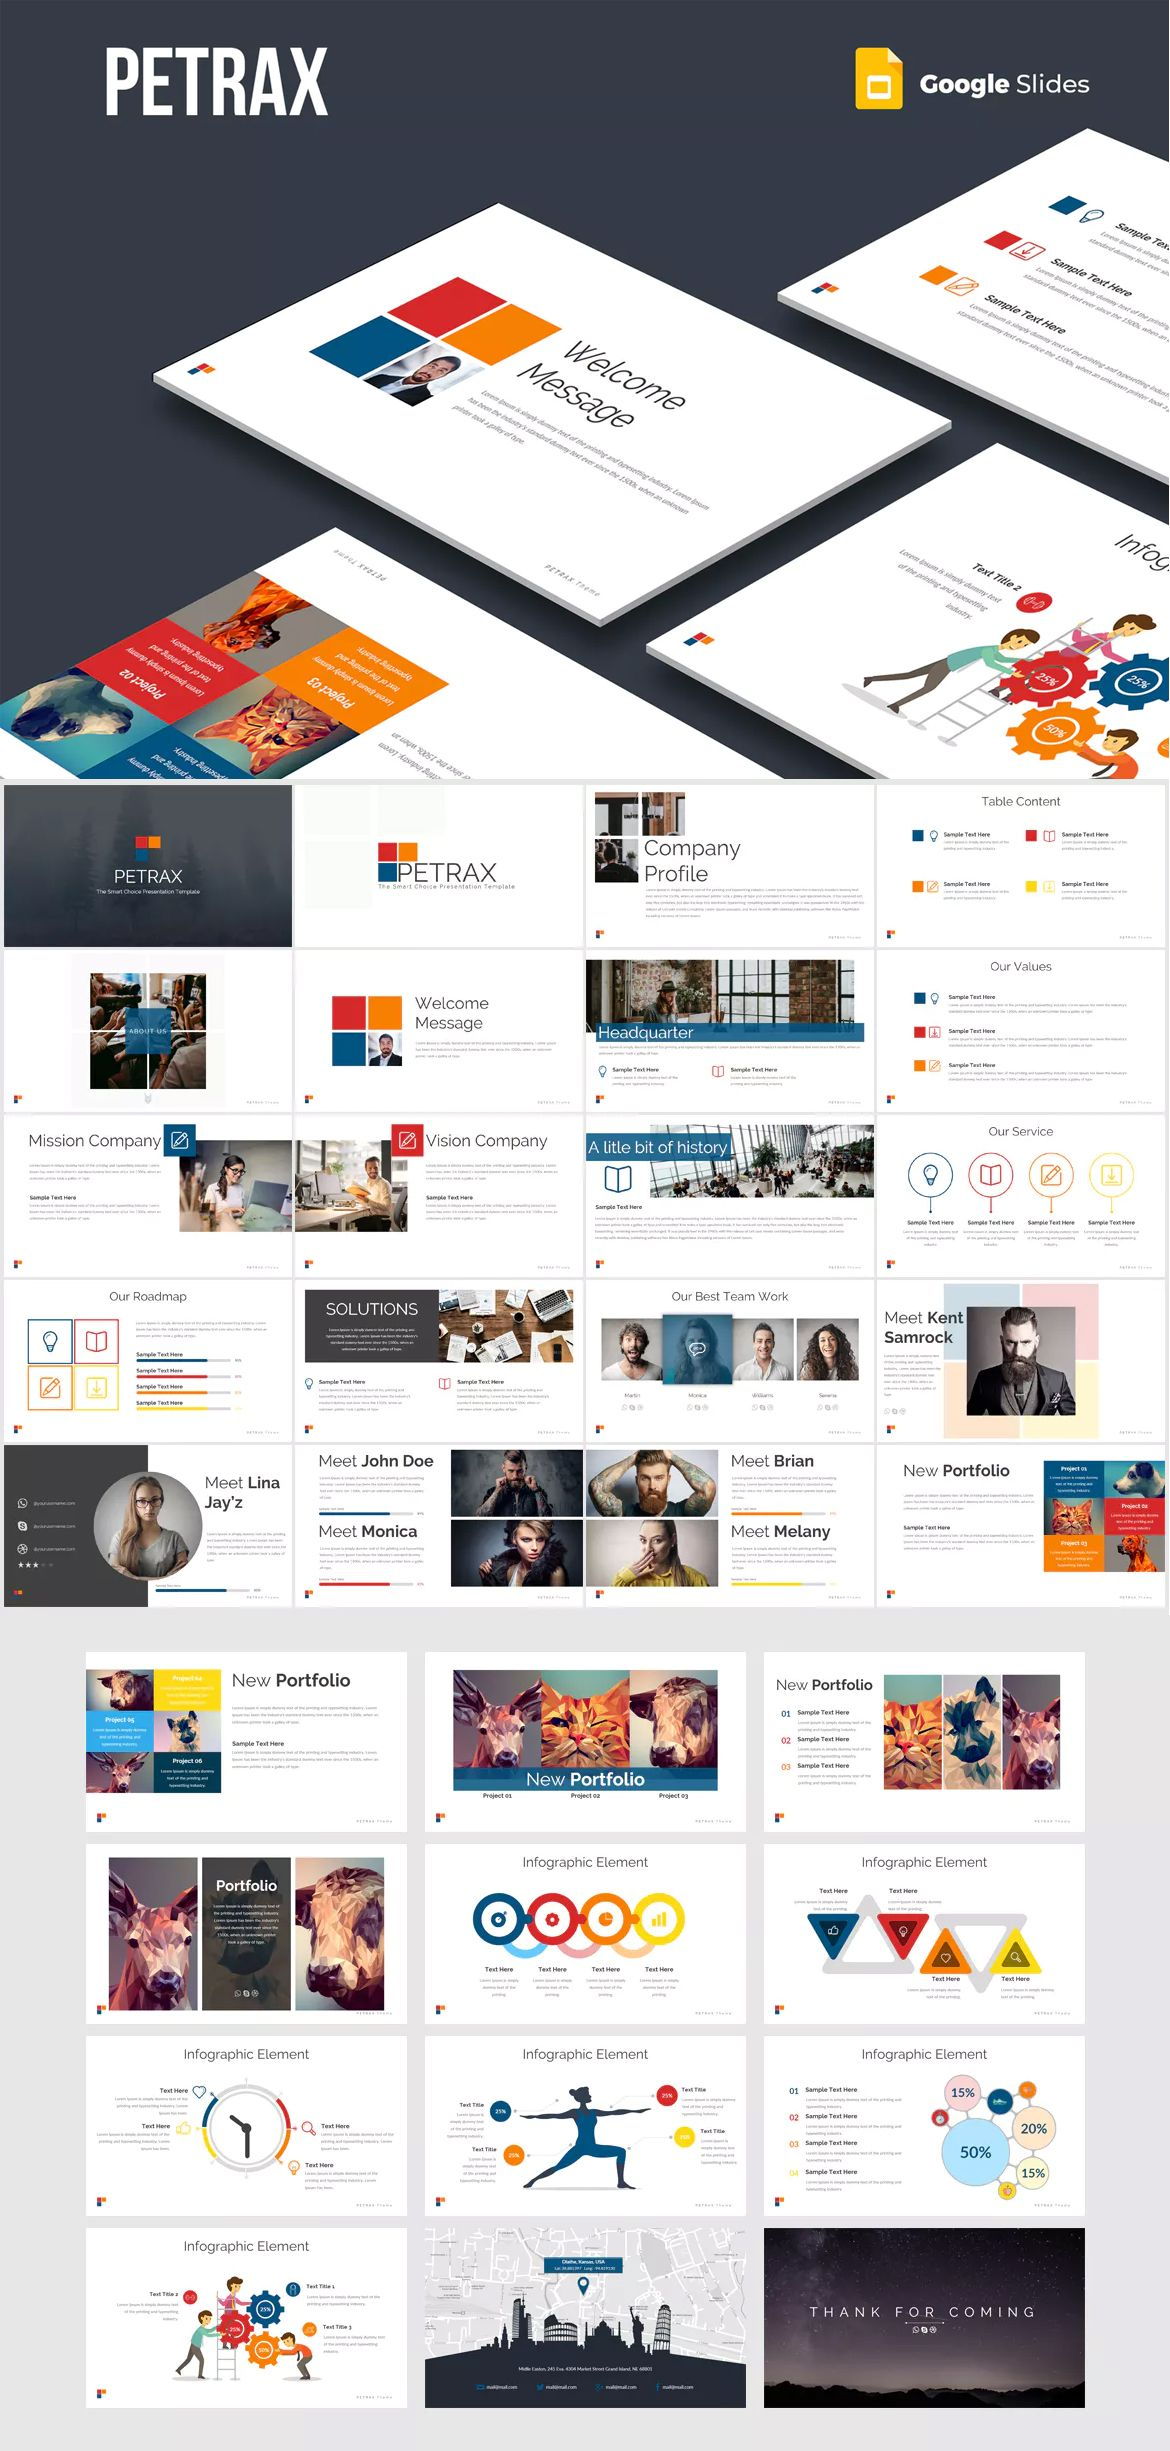 petrax google slides presentation template google slide